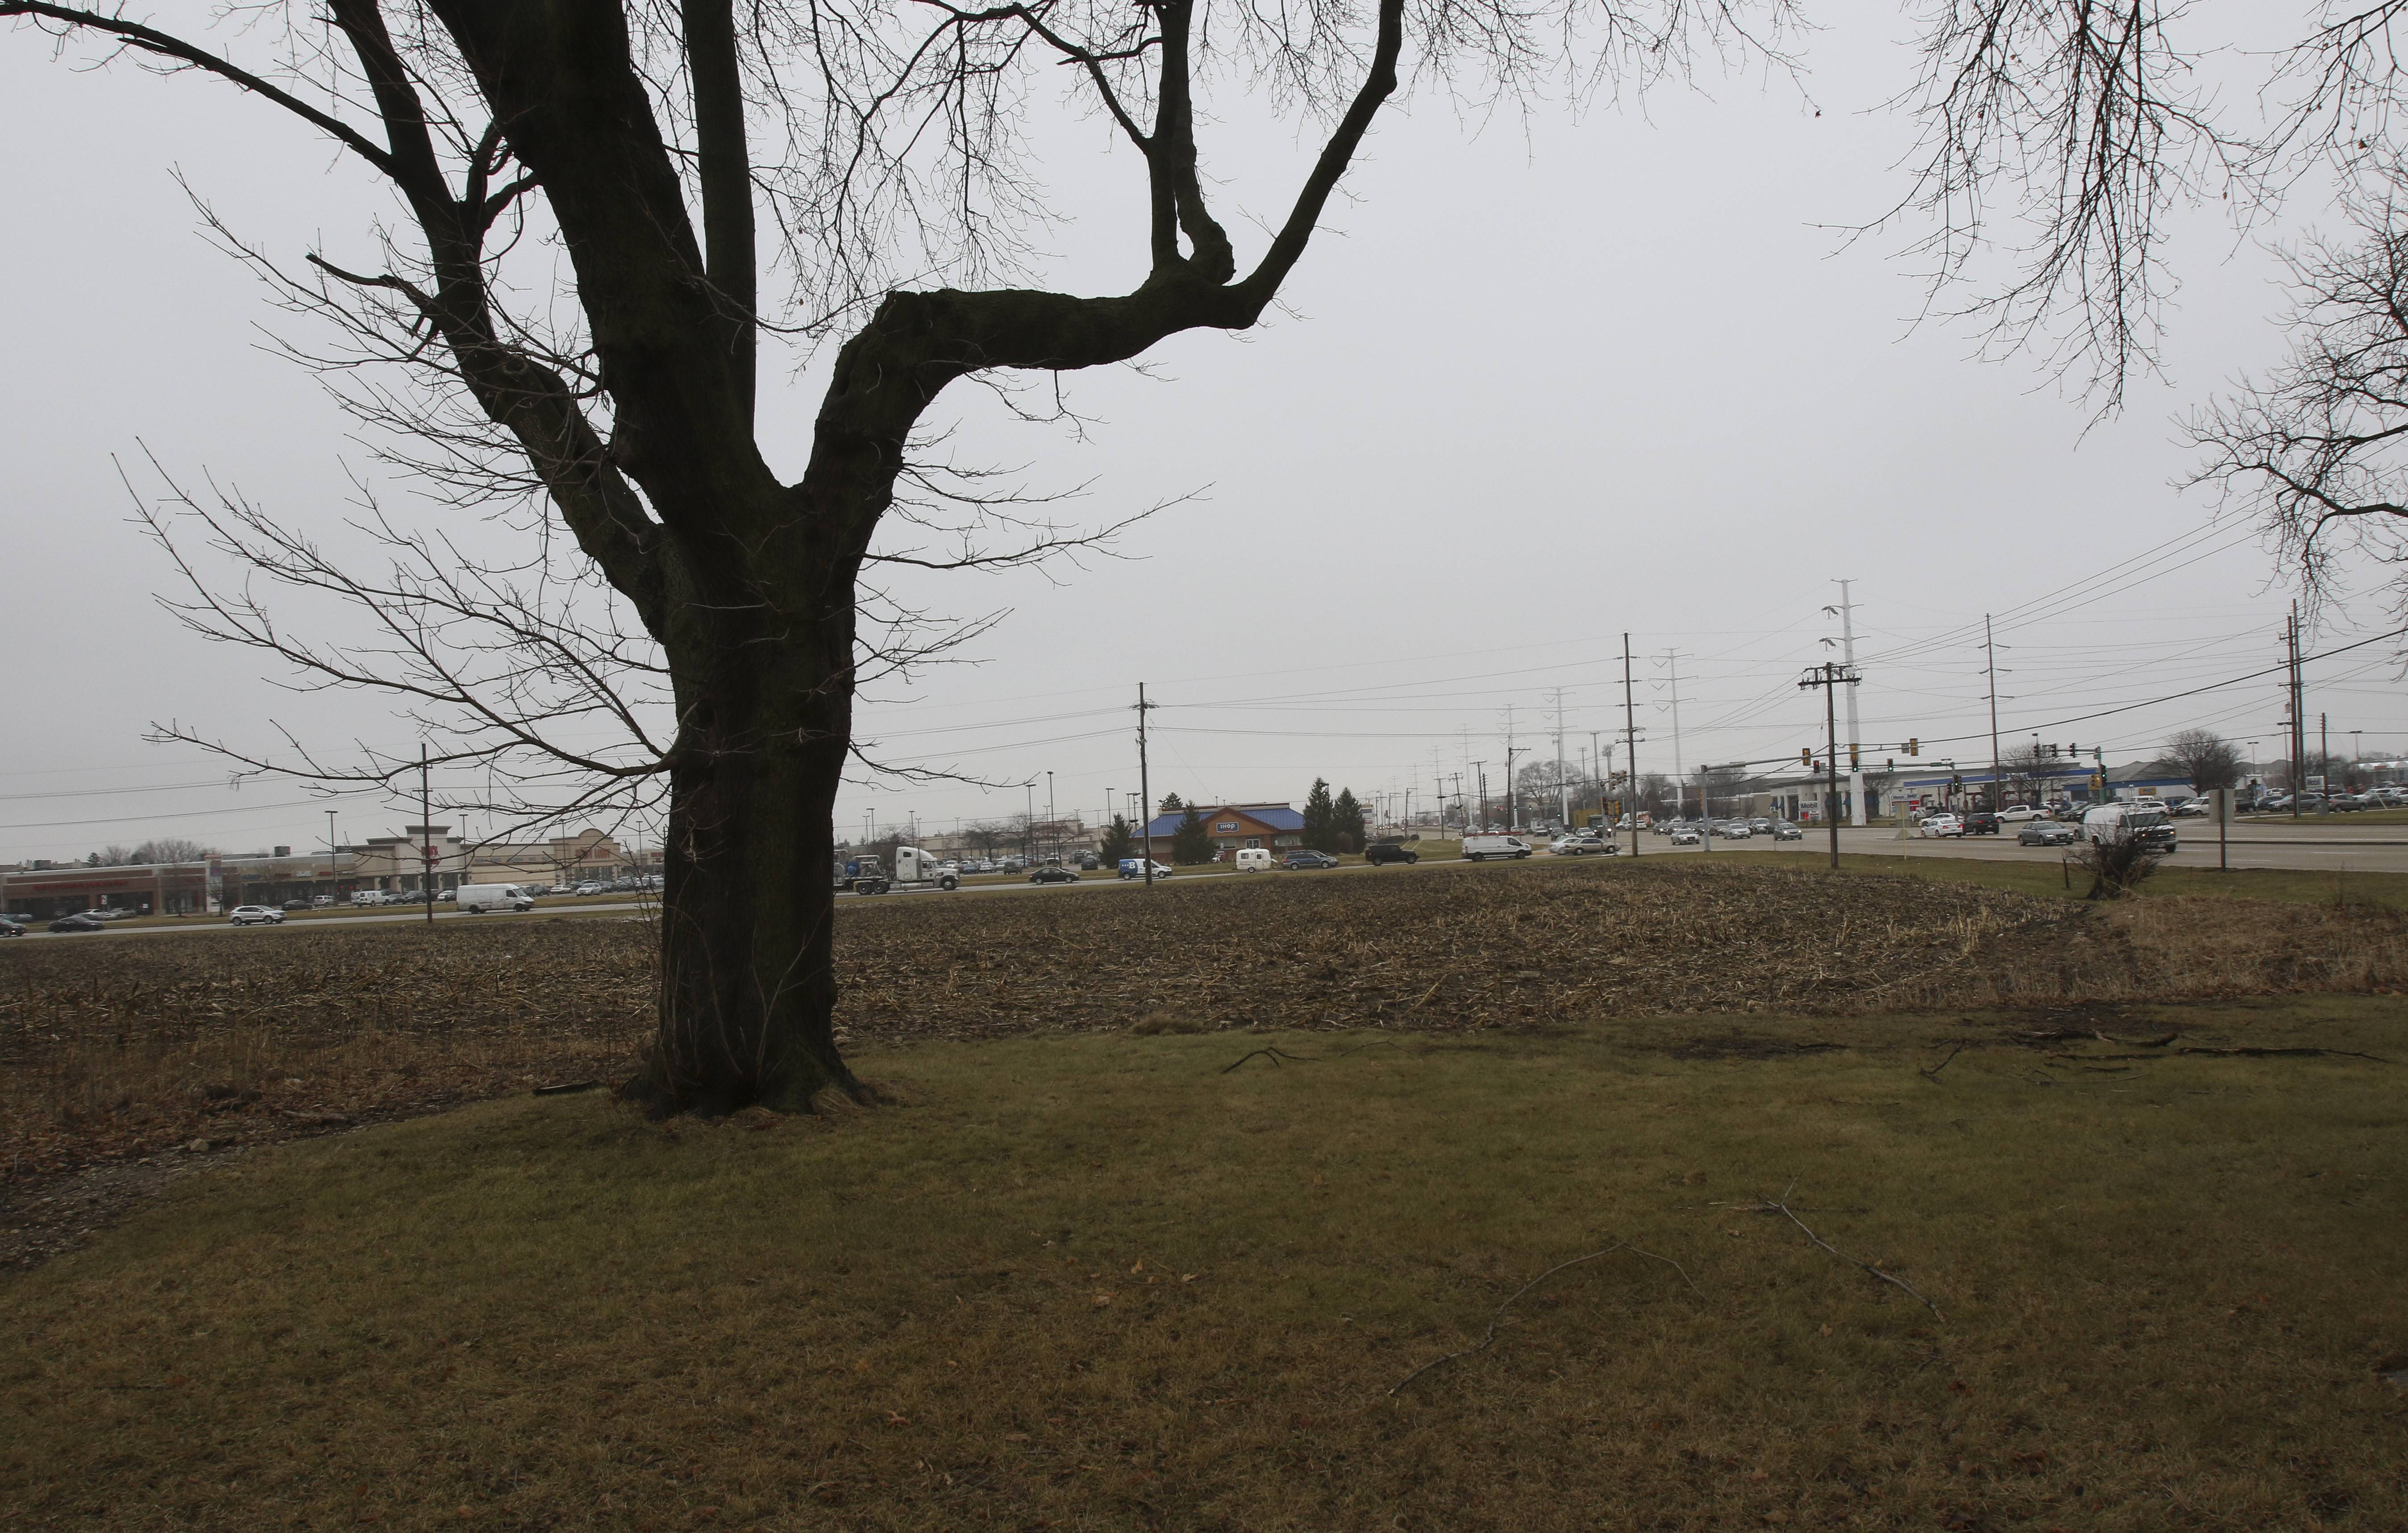 M/I Homes is likely to receive final permission from Aurora to build 171 townhouses on the southwest 25 acres of a dormant site at 75th Street and Route 59. The land formerly belonged to Indian Prairie Unit District 204, which had hoped to build its third high school there until the cost of acquiring additional land was determined to be too steep.